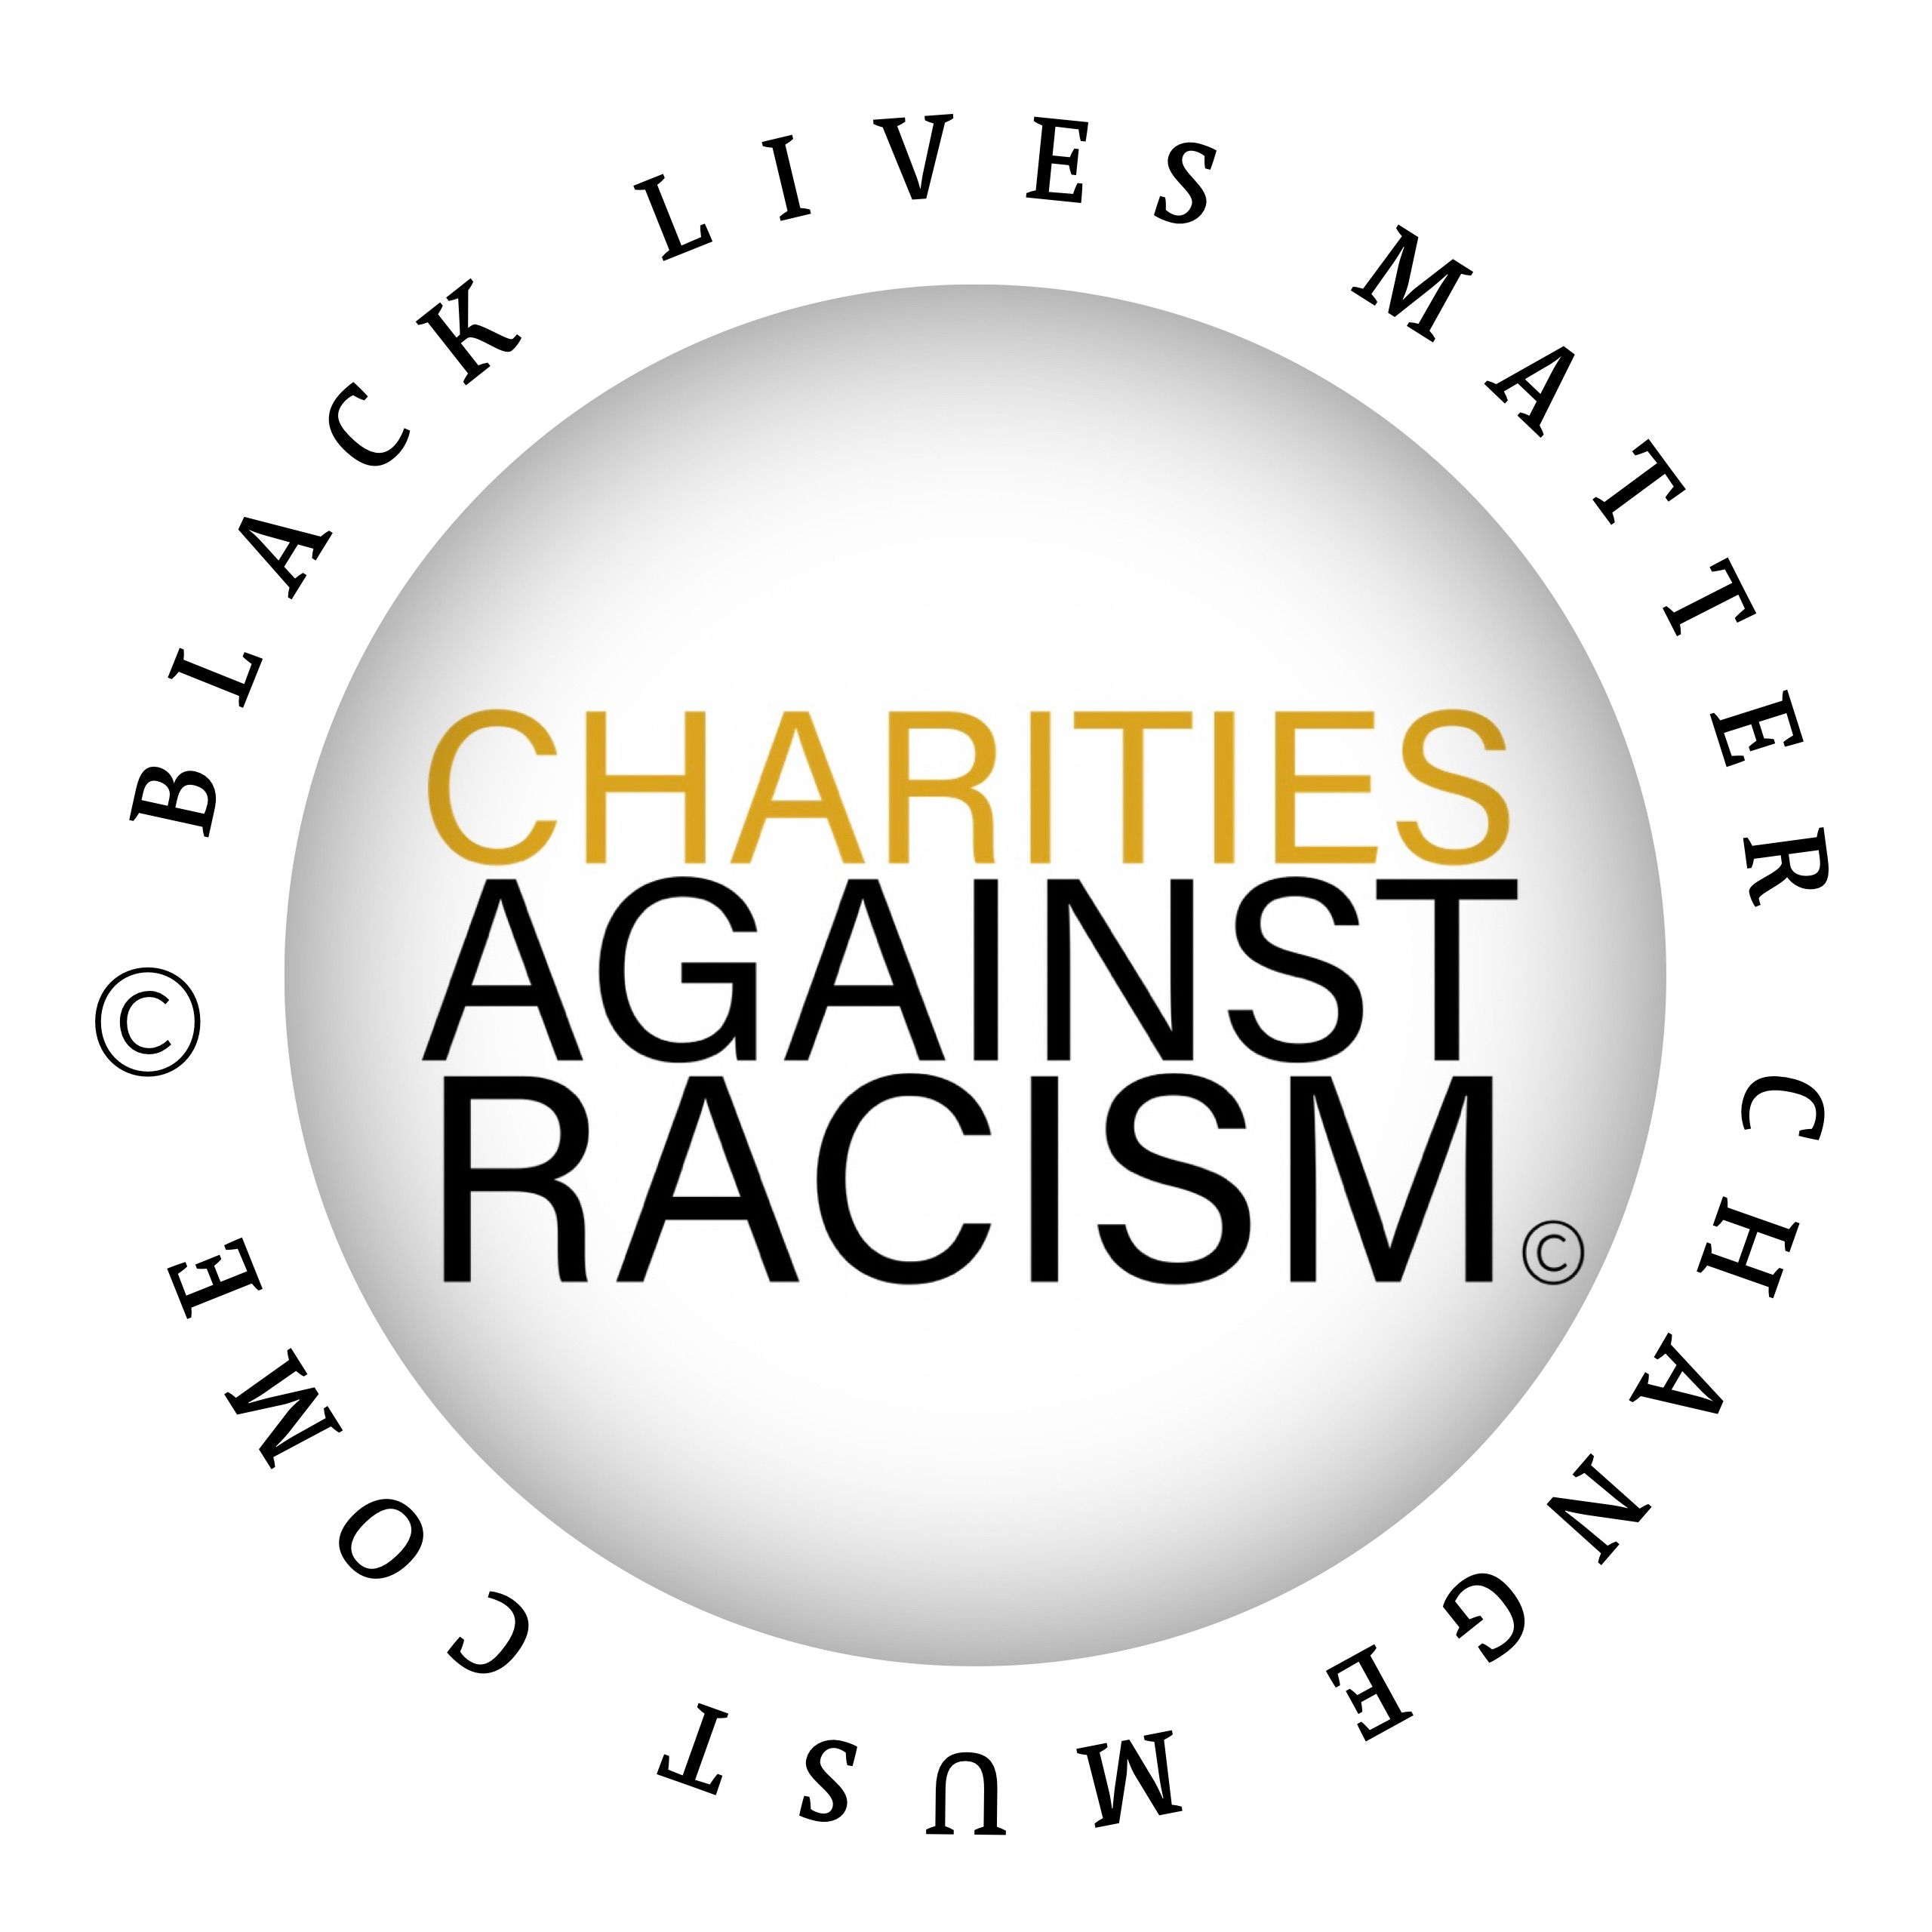 Charities Against Racism